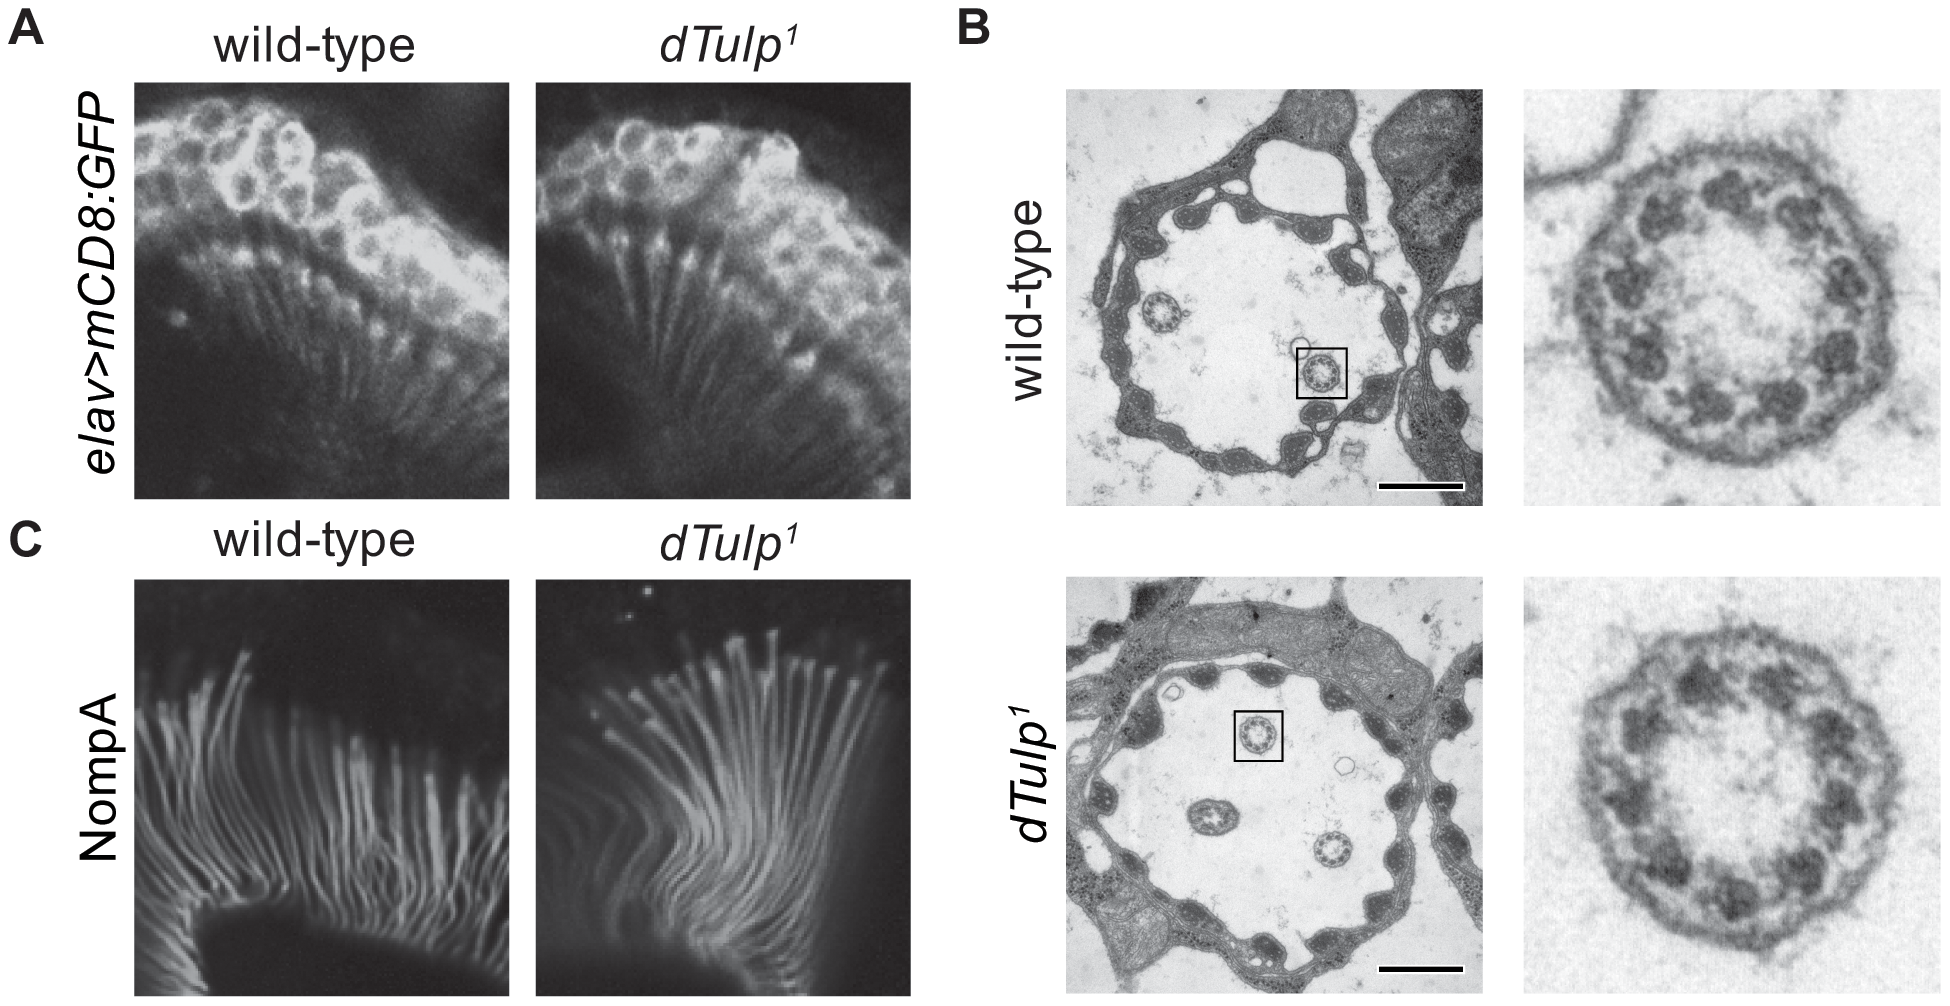 Normal scolopidia structure in the <i>dTulp</i> mutant.